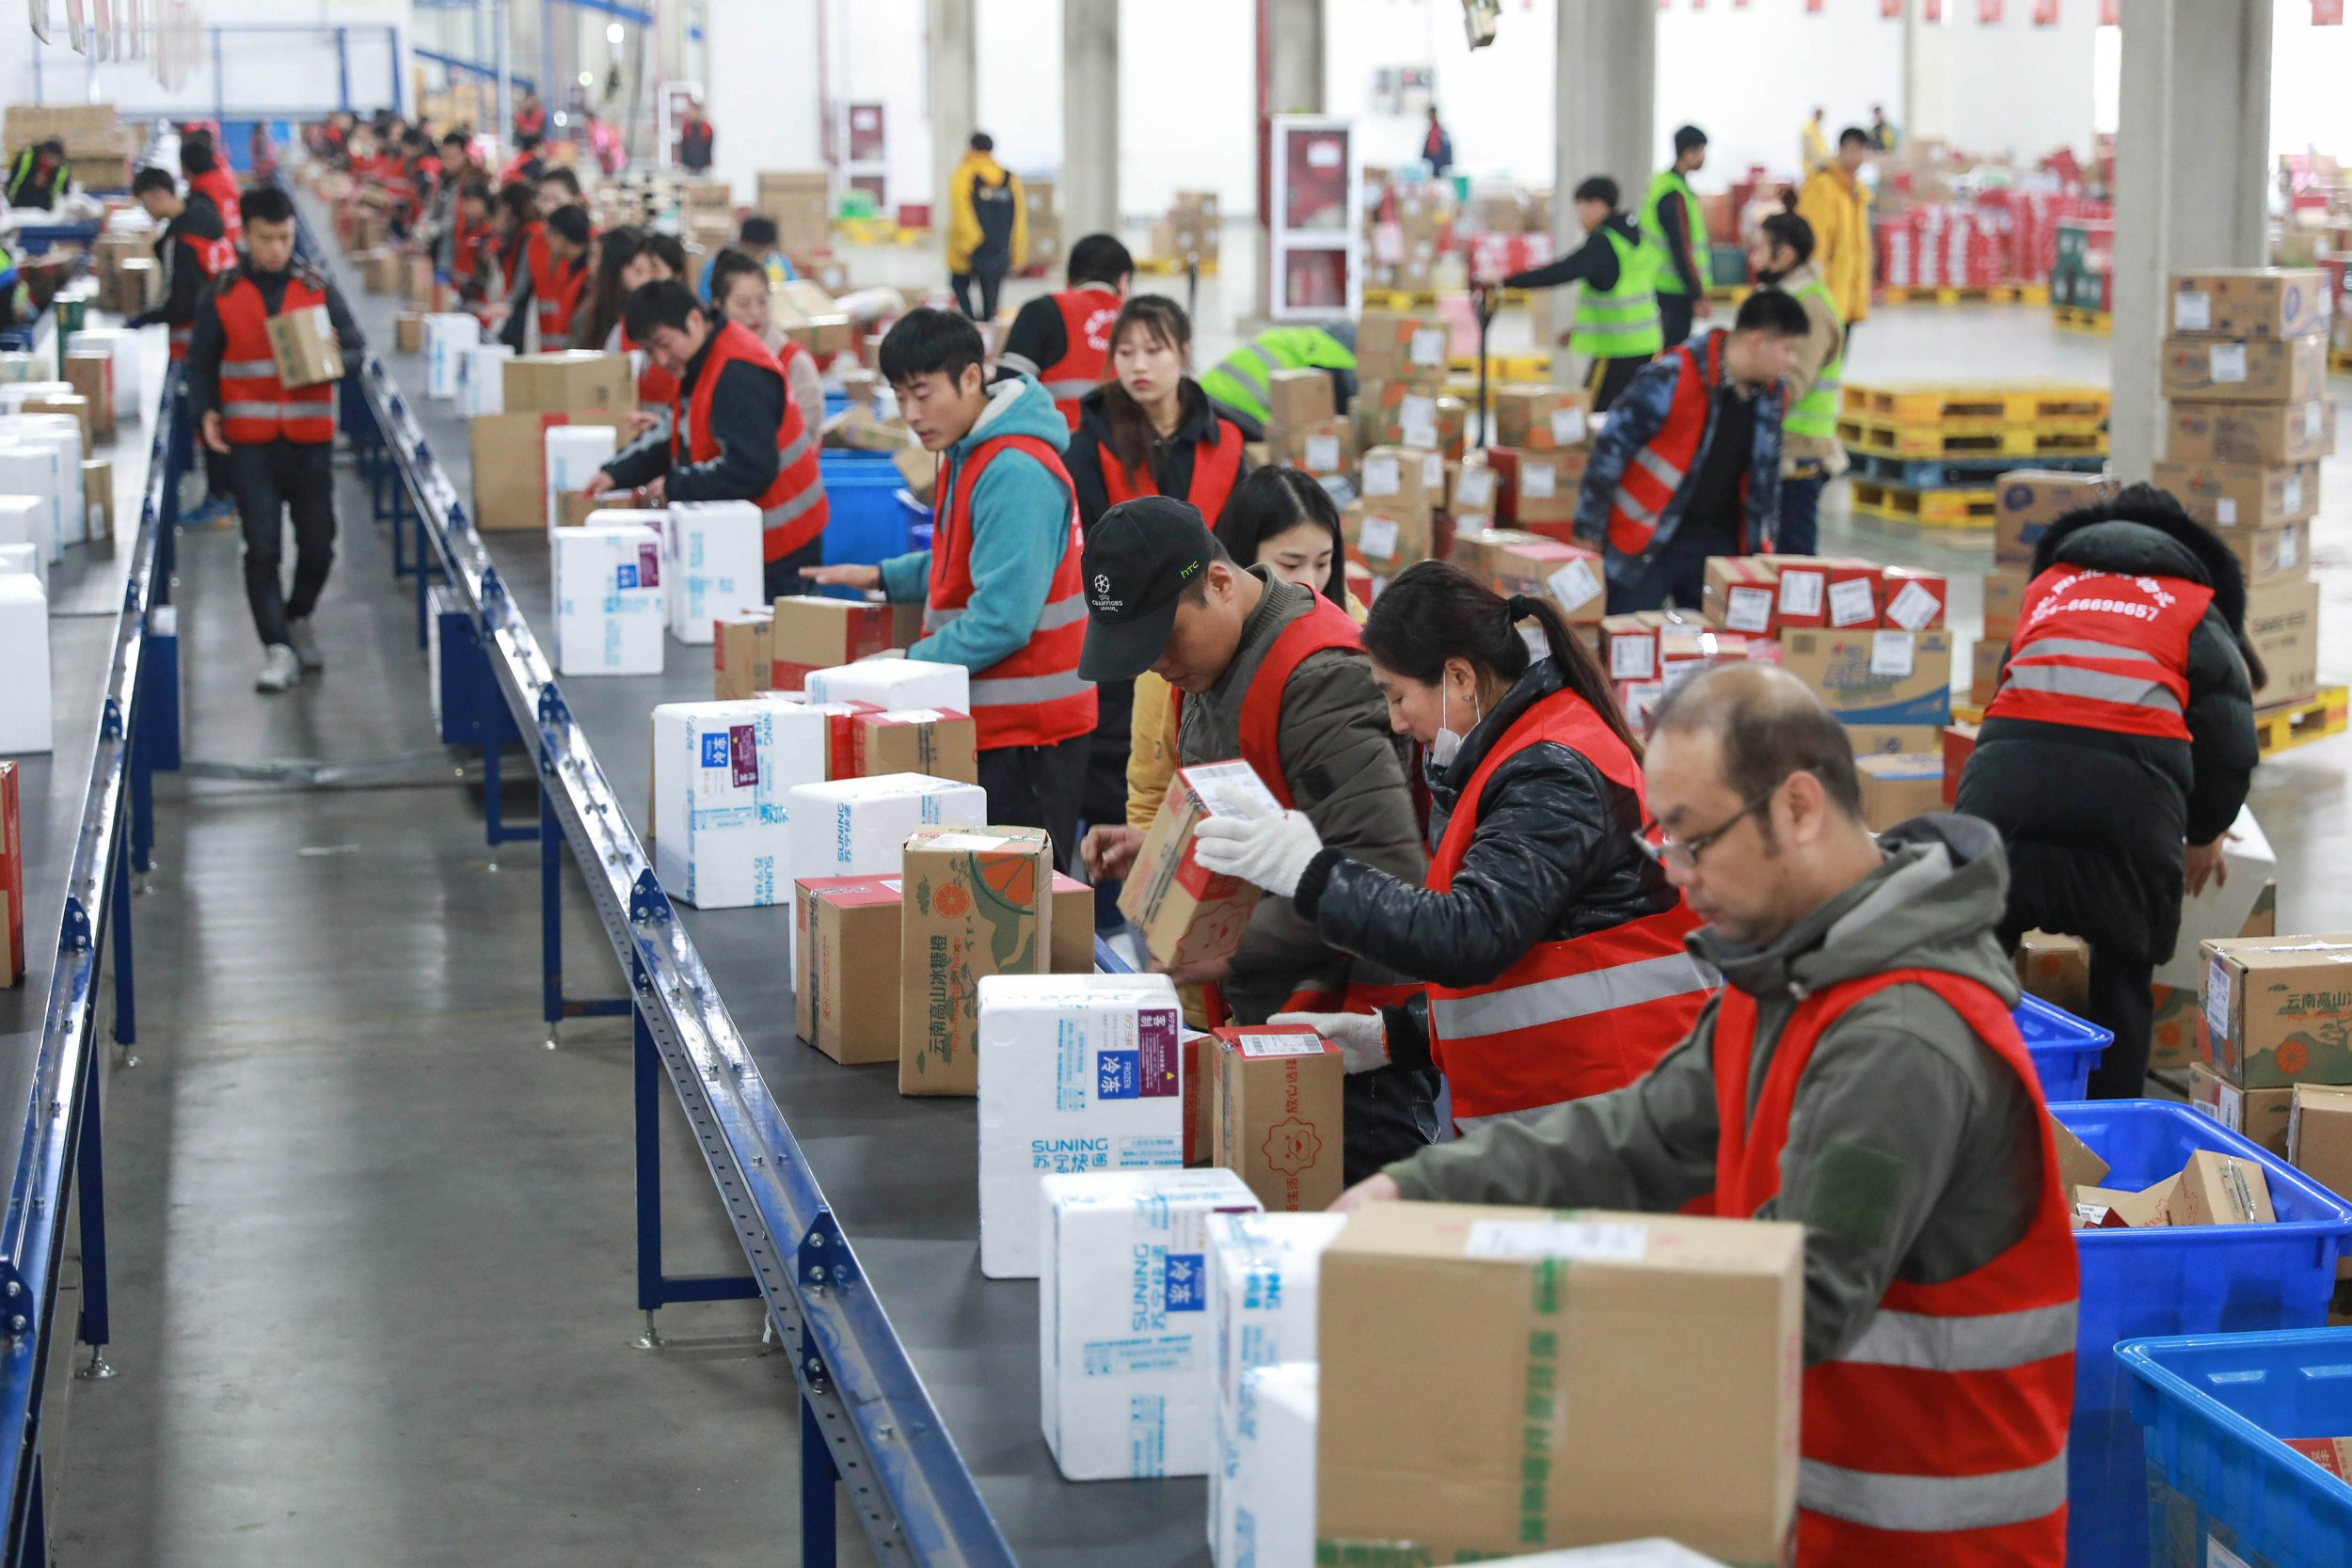 """This photo taken on November 9, 2018 shows workers preparing items ahead of the """"Singles Day"""" shopping festival at a Suning storage facility in Shenyang in China's northeastern Liaoning province. (Photo by STR / AFP) / China OUTSTR/AFP/Getty Images"""